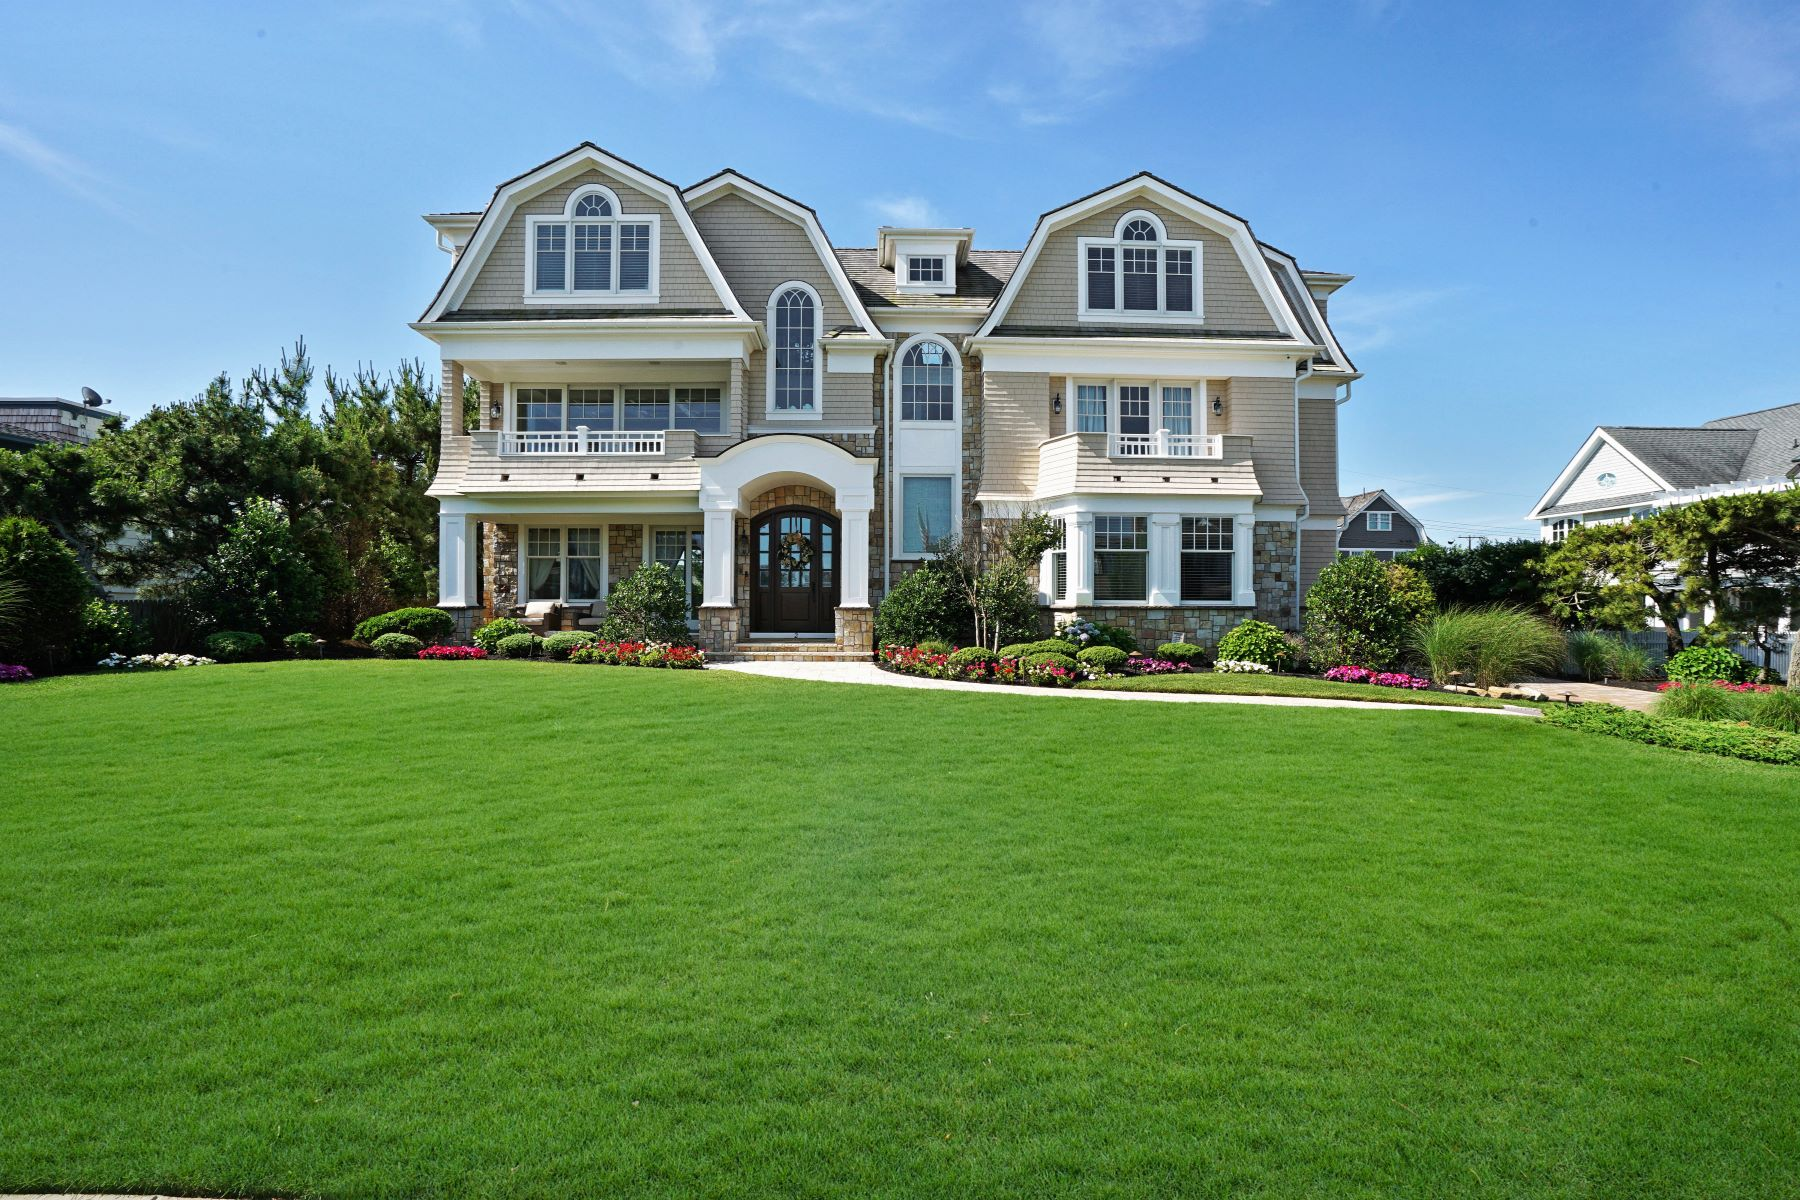 Single Family Homes for Sale at Perfection Knows No Boundaries 2 Neptune Place Sea Girt, New Jersey 08750 United States